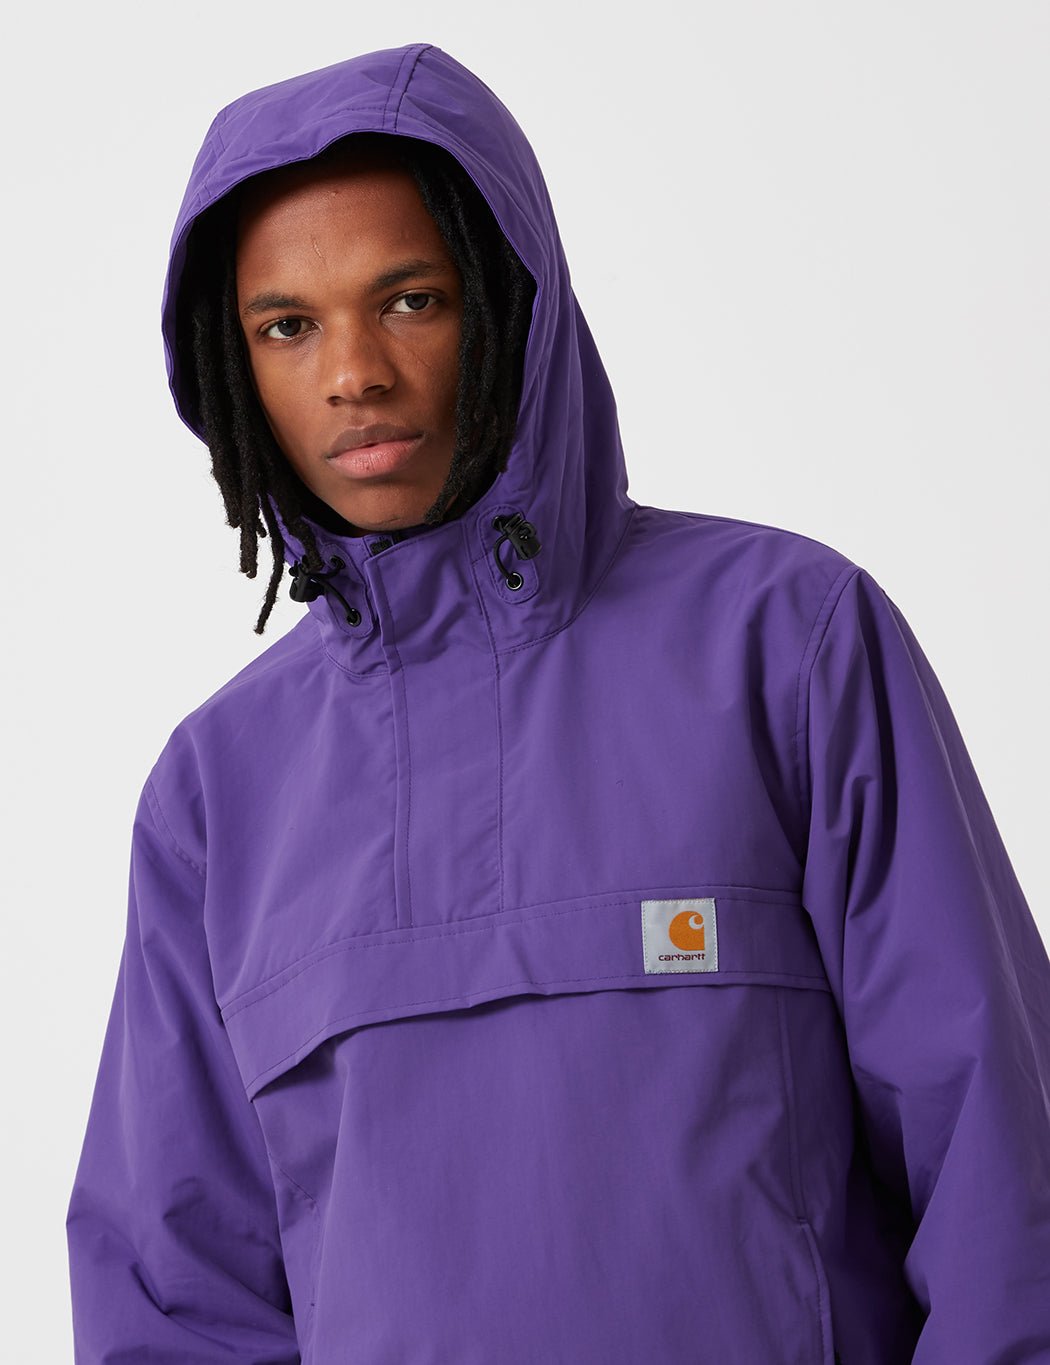 Carhartt-WIP Nimbus Half-Zip Jacket (Fleece Lined) - Frosted Viola Purple